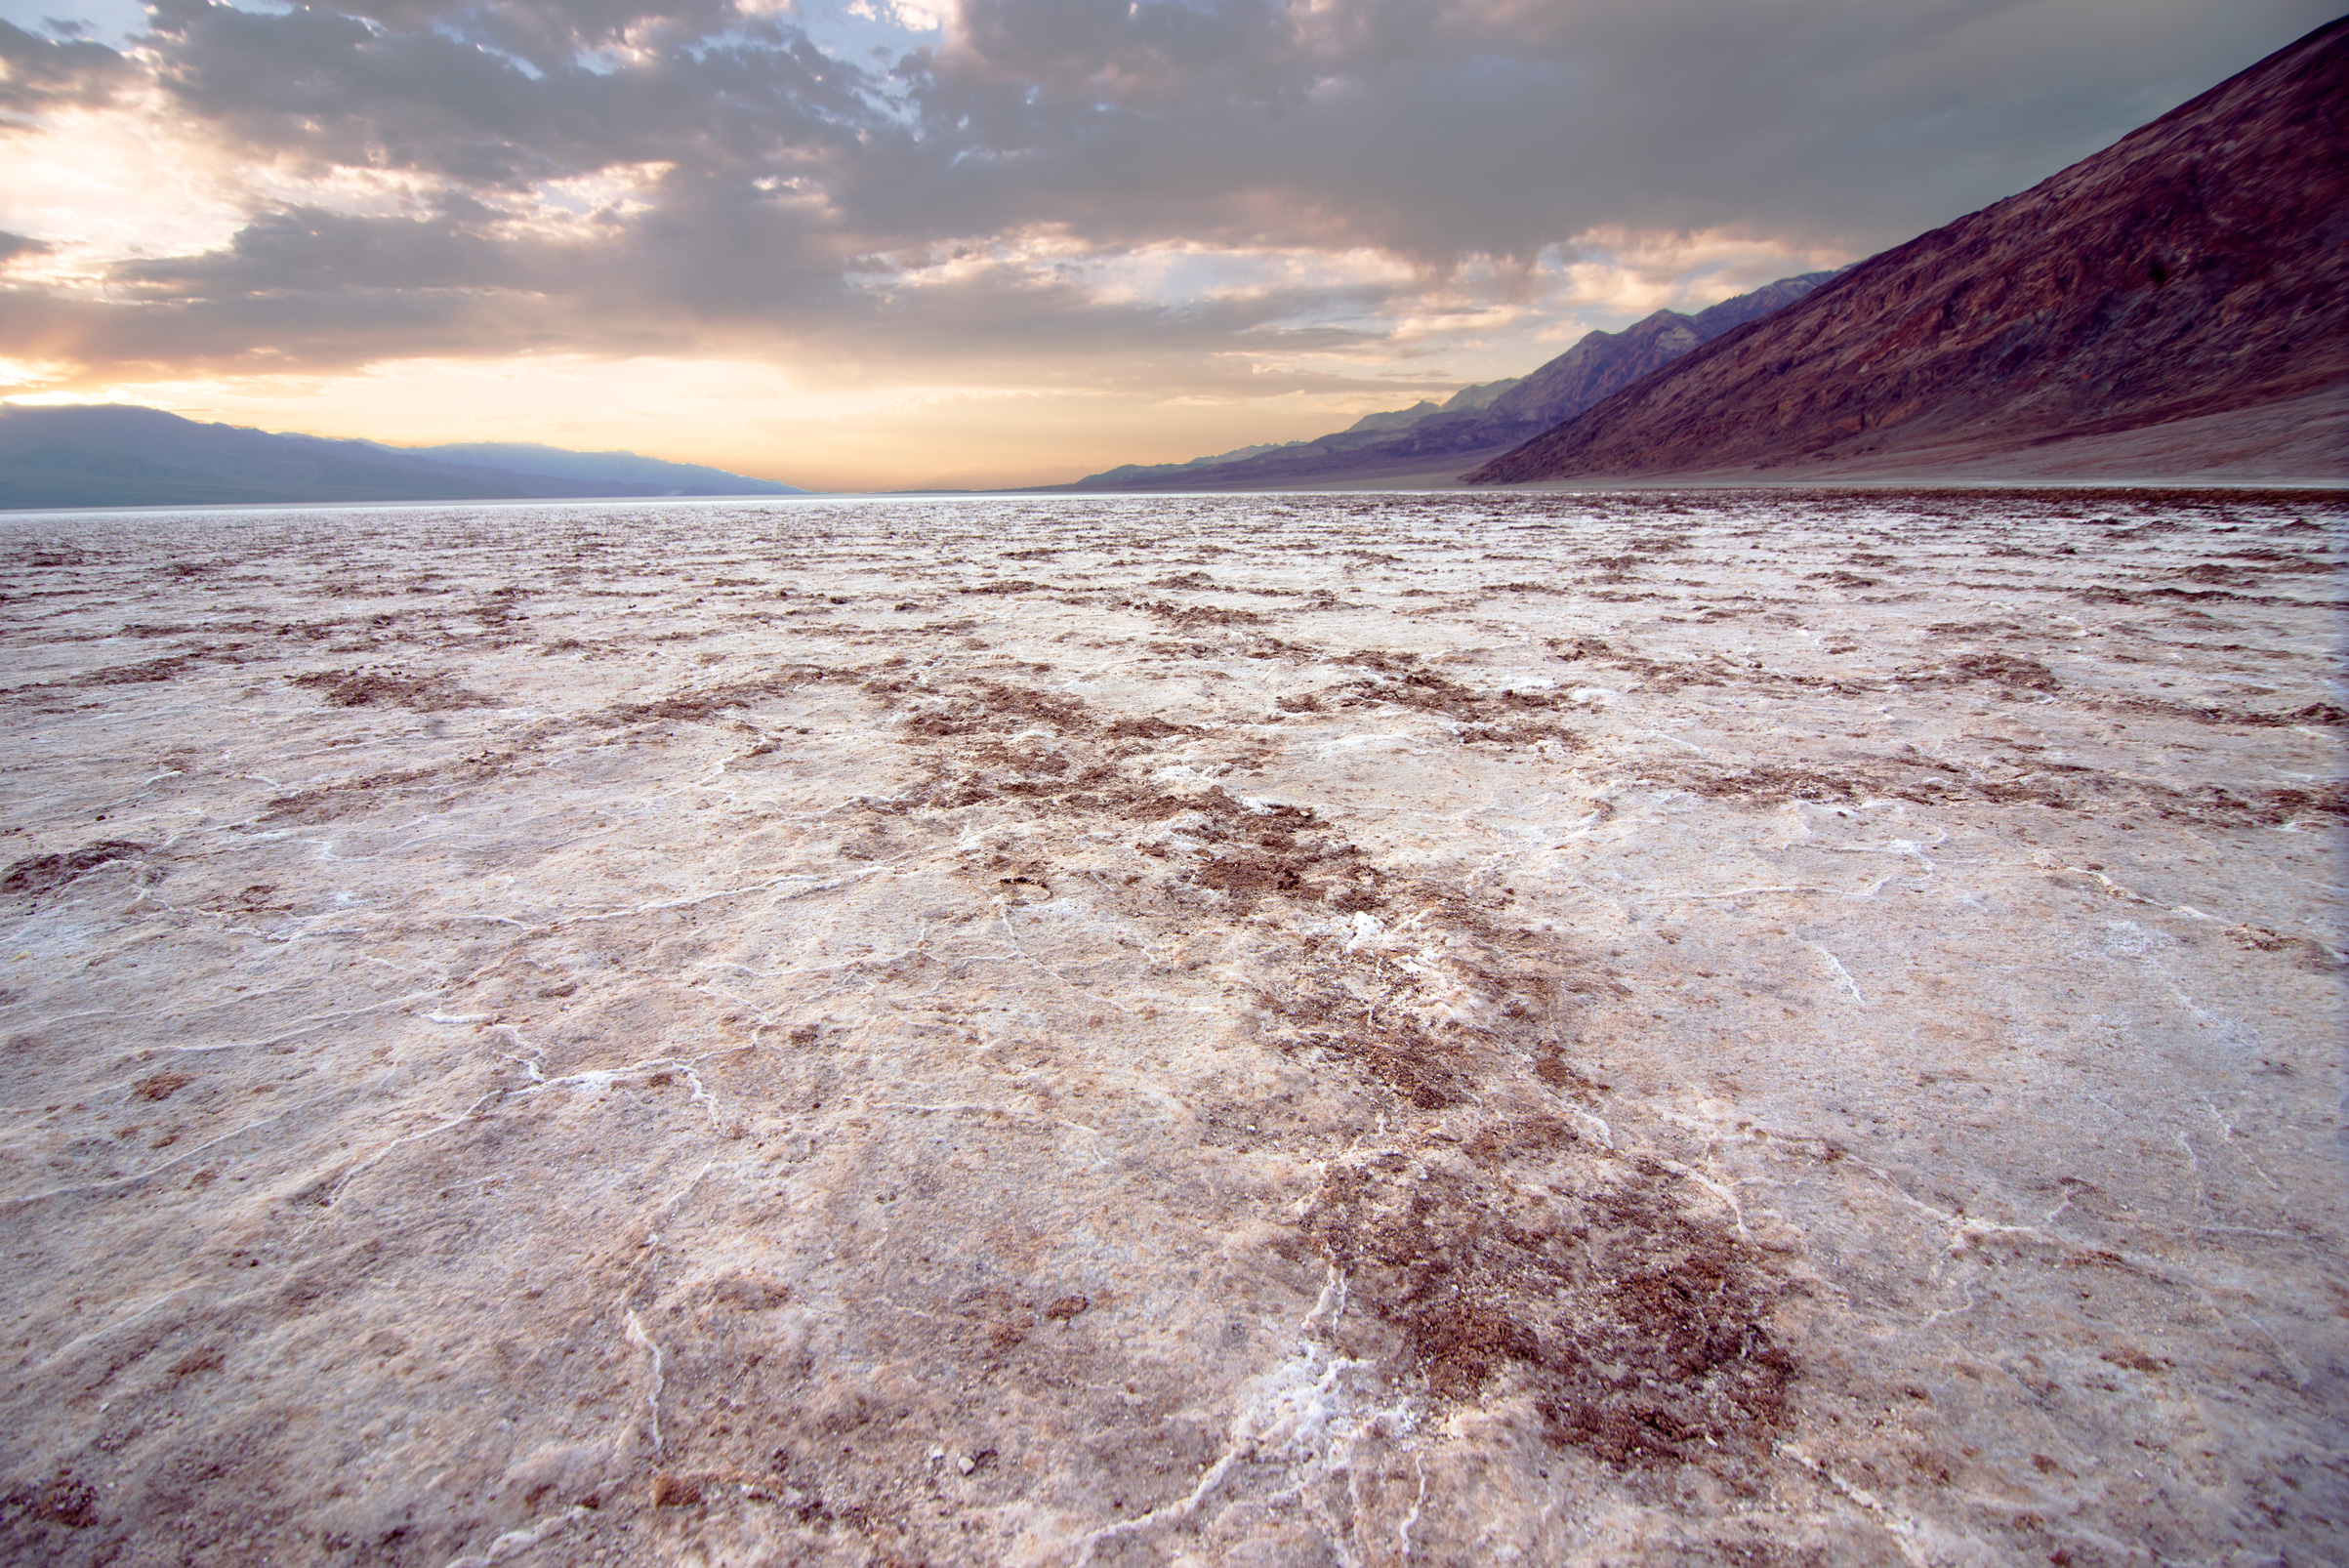 20170624_30_Trip_Death_Valley_Driving_Video_Badwater_Basin_048.jpg